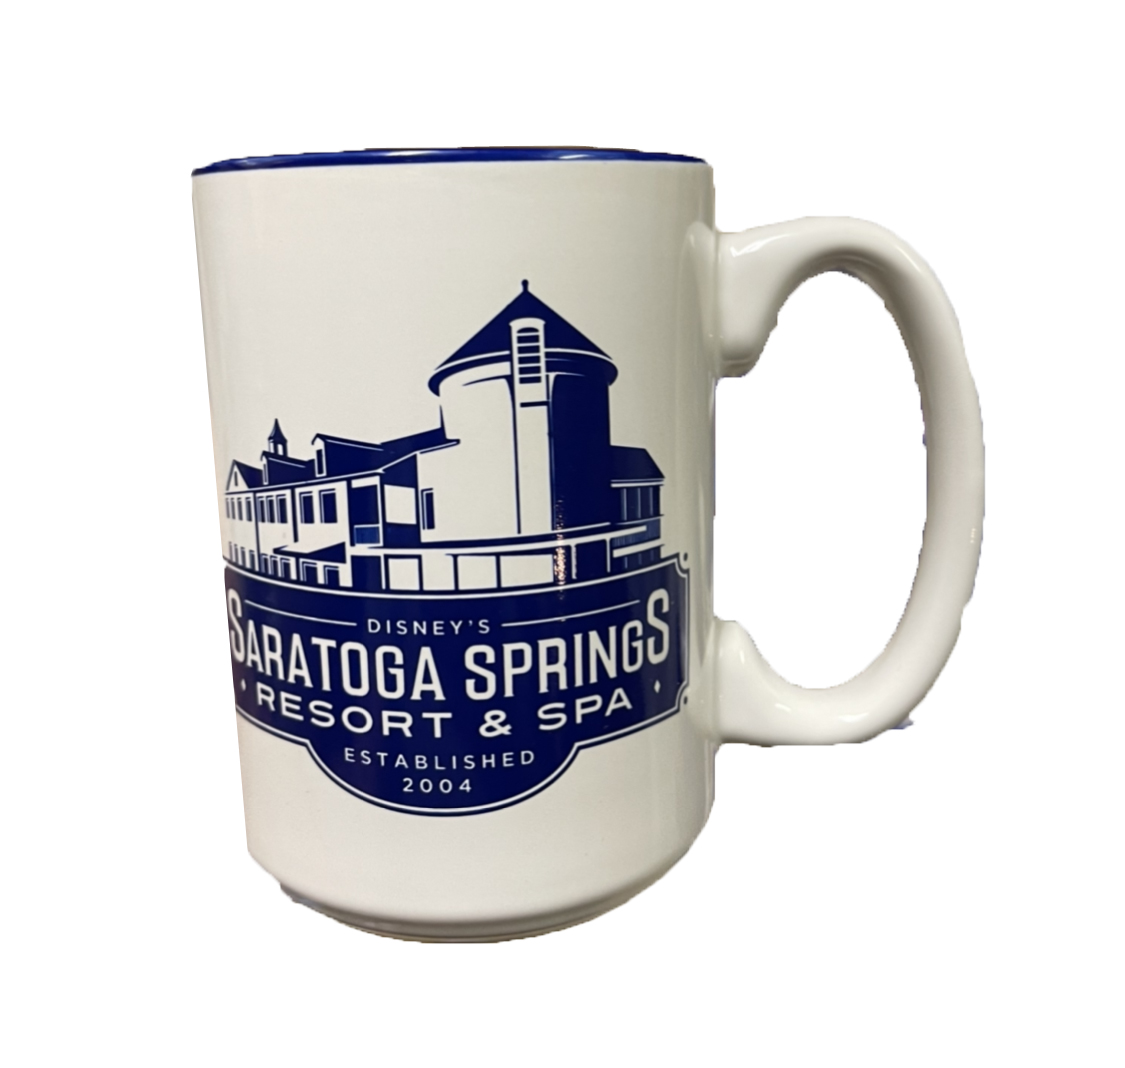 Disney Coffee Mug - Disney's Saratoga Springs Resort & Spa